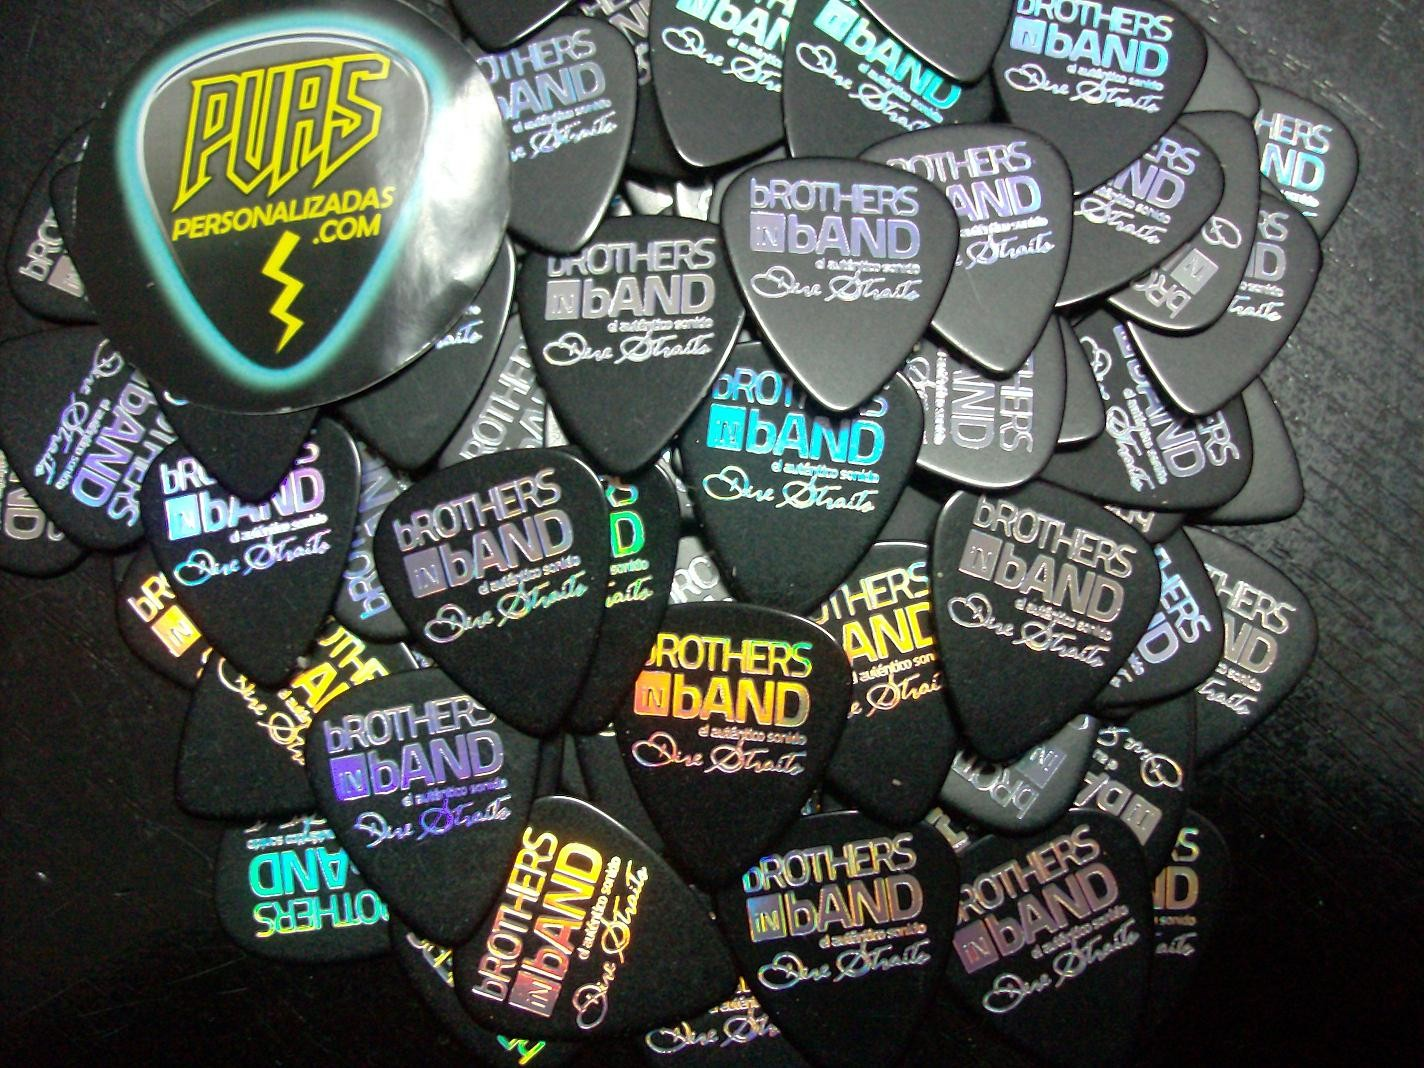 puas brothers in band, guitar picks